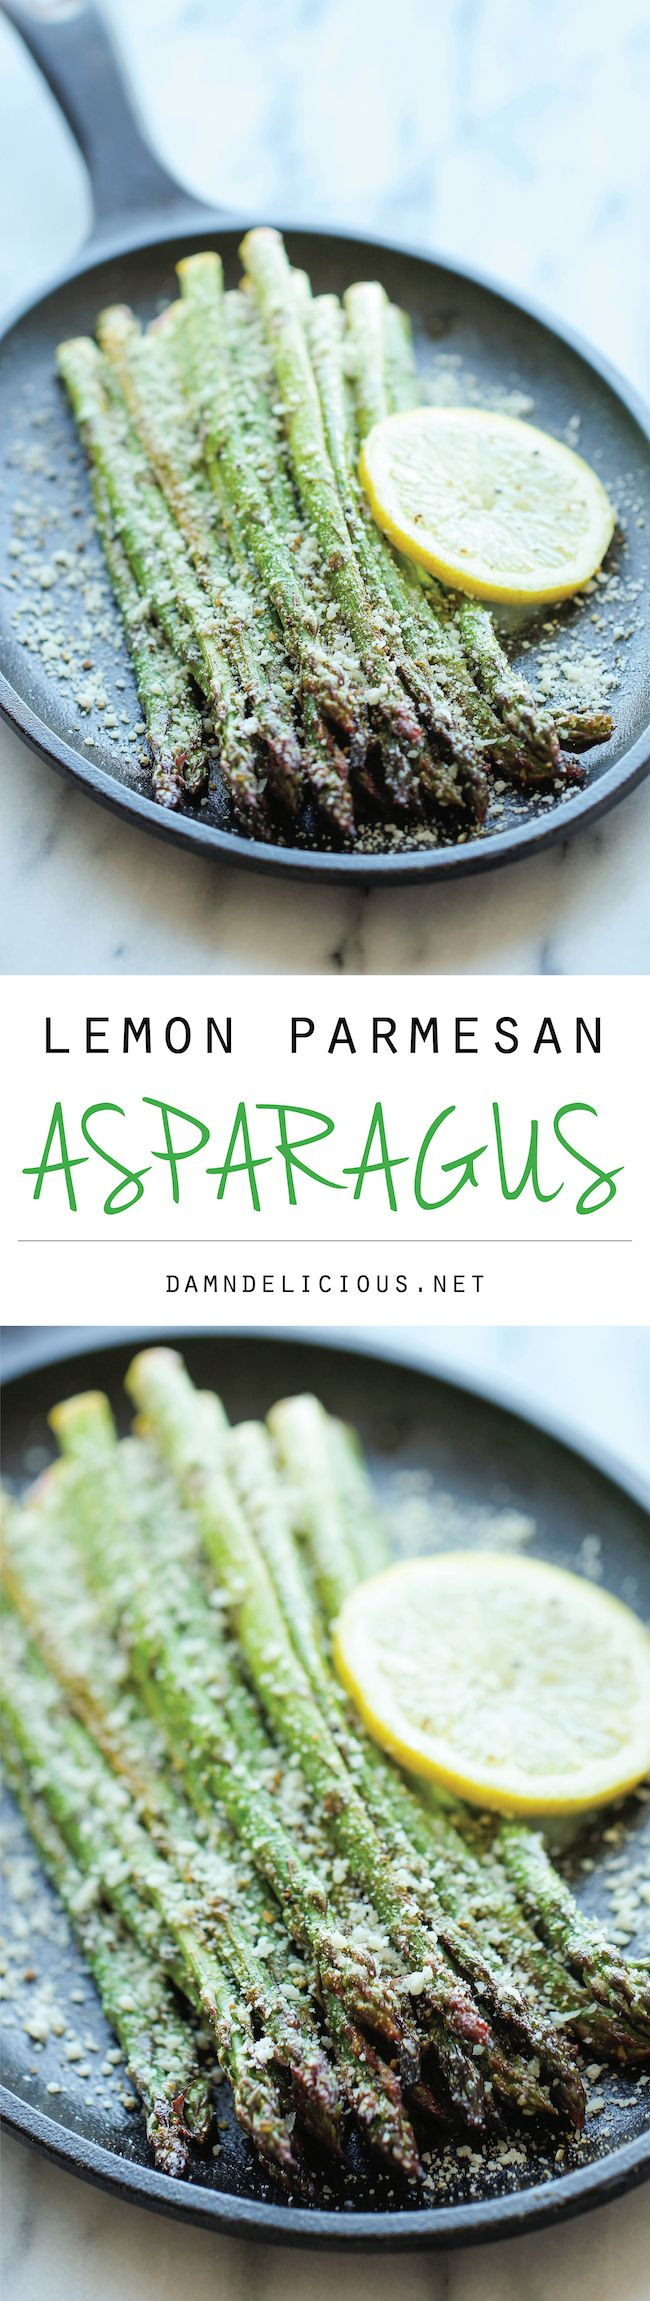 with garlic easy min A Asparagus with quick Parmesan and   cup side lemon Parmesan  away  dish juice  made   jersey soccer just tee goodness  prep       fresh usa Lemon world and